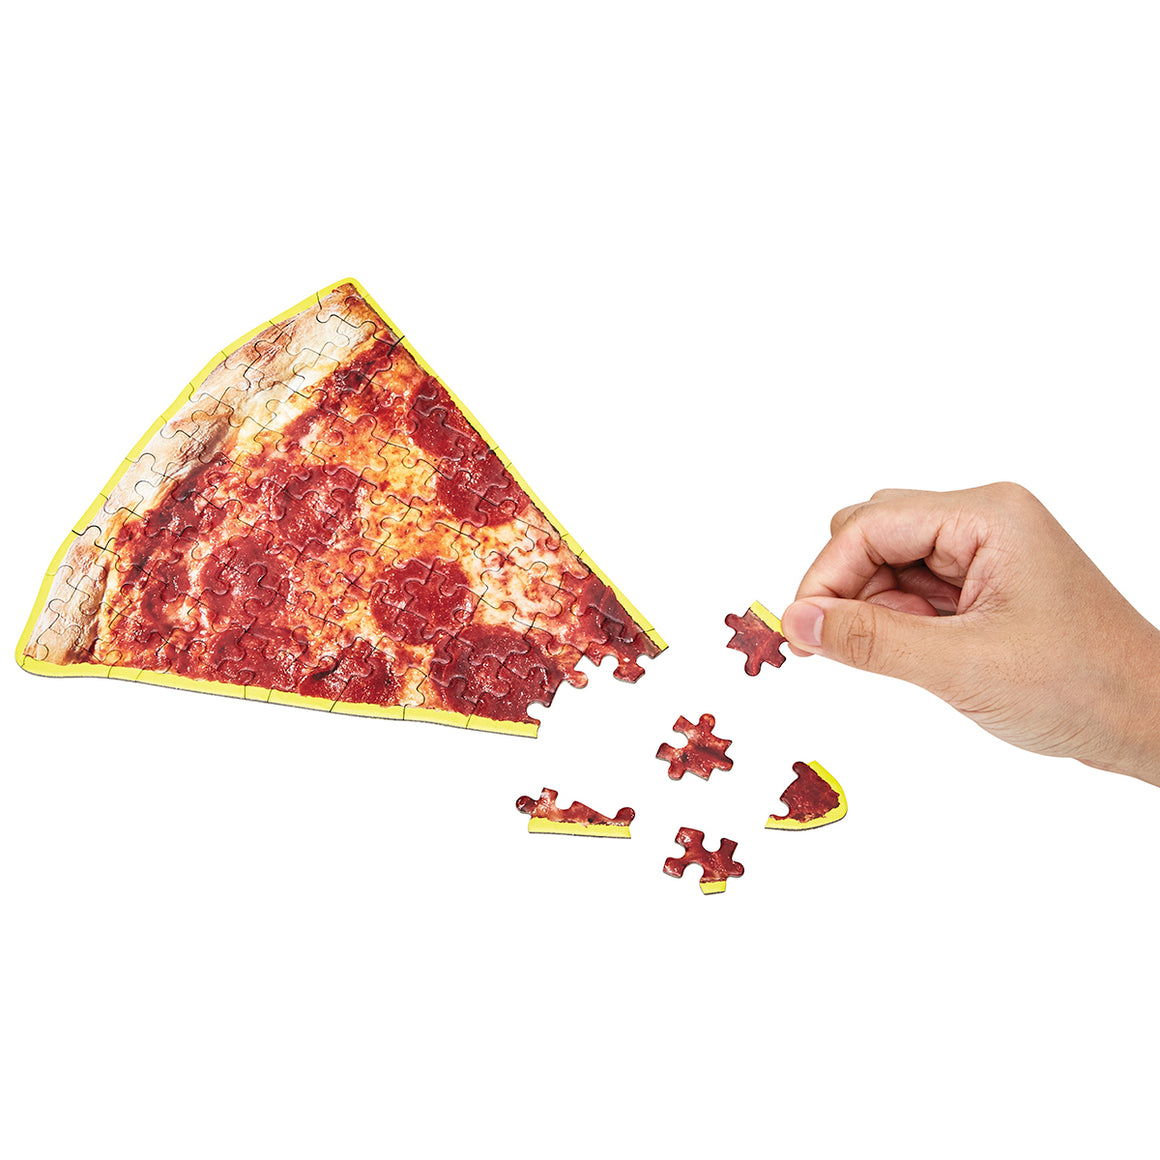 A cute puzzle in the shape and print of slice of Pepperoni pizza. Shown almost complete, with a hand placing pieces.